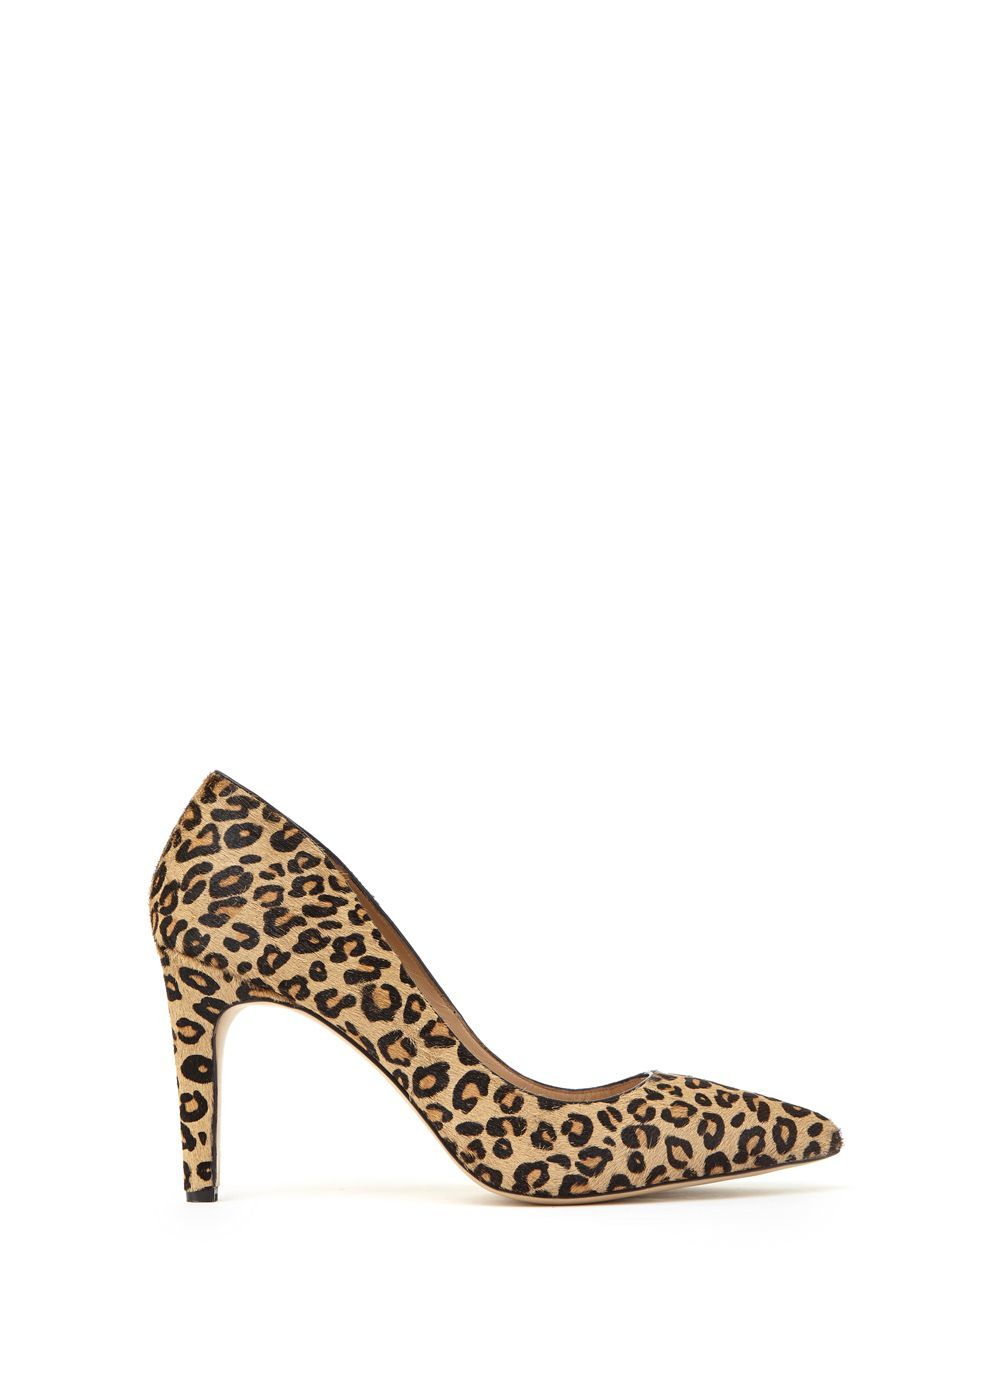 Leopard Print Evelyn Court, Multi Coloured - secondary colour: chocolate brown; predominant colour: camel; occasions: evening, work, occasion; material: faux leather; heel height: high; heel: stiletto; toe: pointed toe; style: courts; finish: plain; pattern: animal print; season: s/s 2016